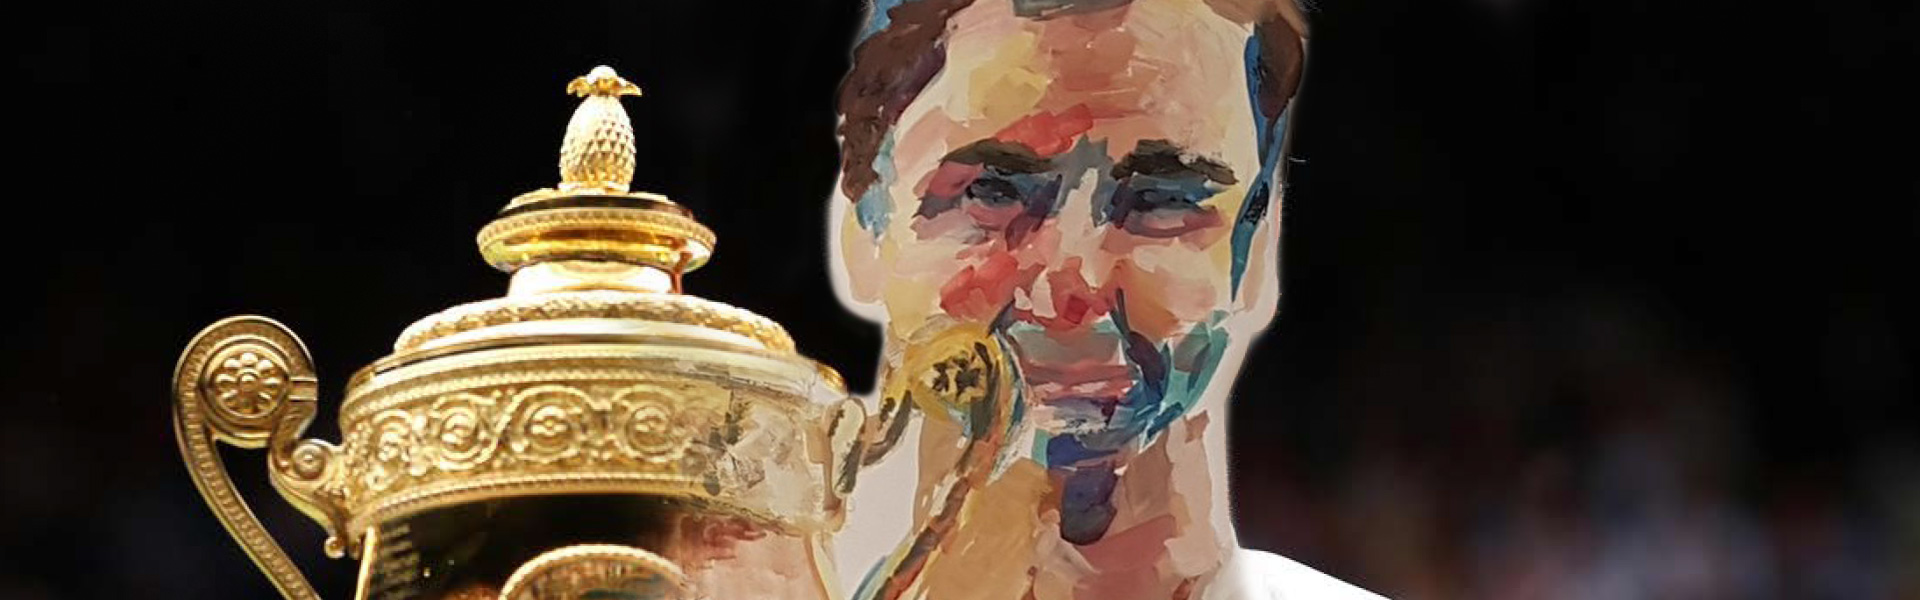 Your Roger Federer Live Sketches #SketchOff #MakeAStartInArt